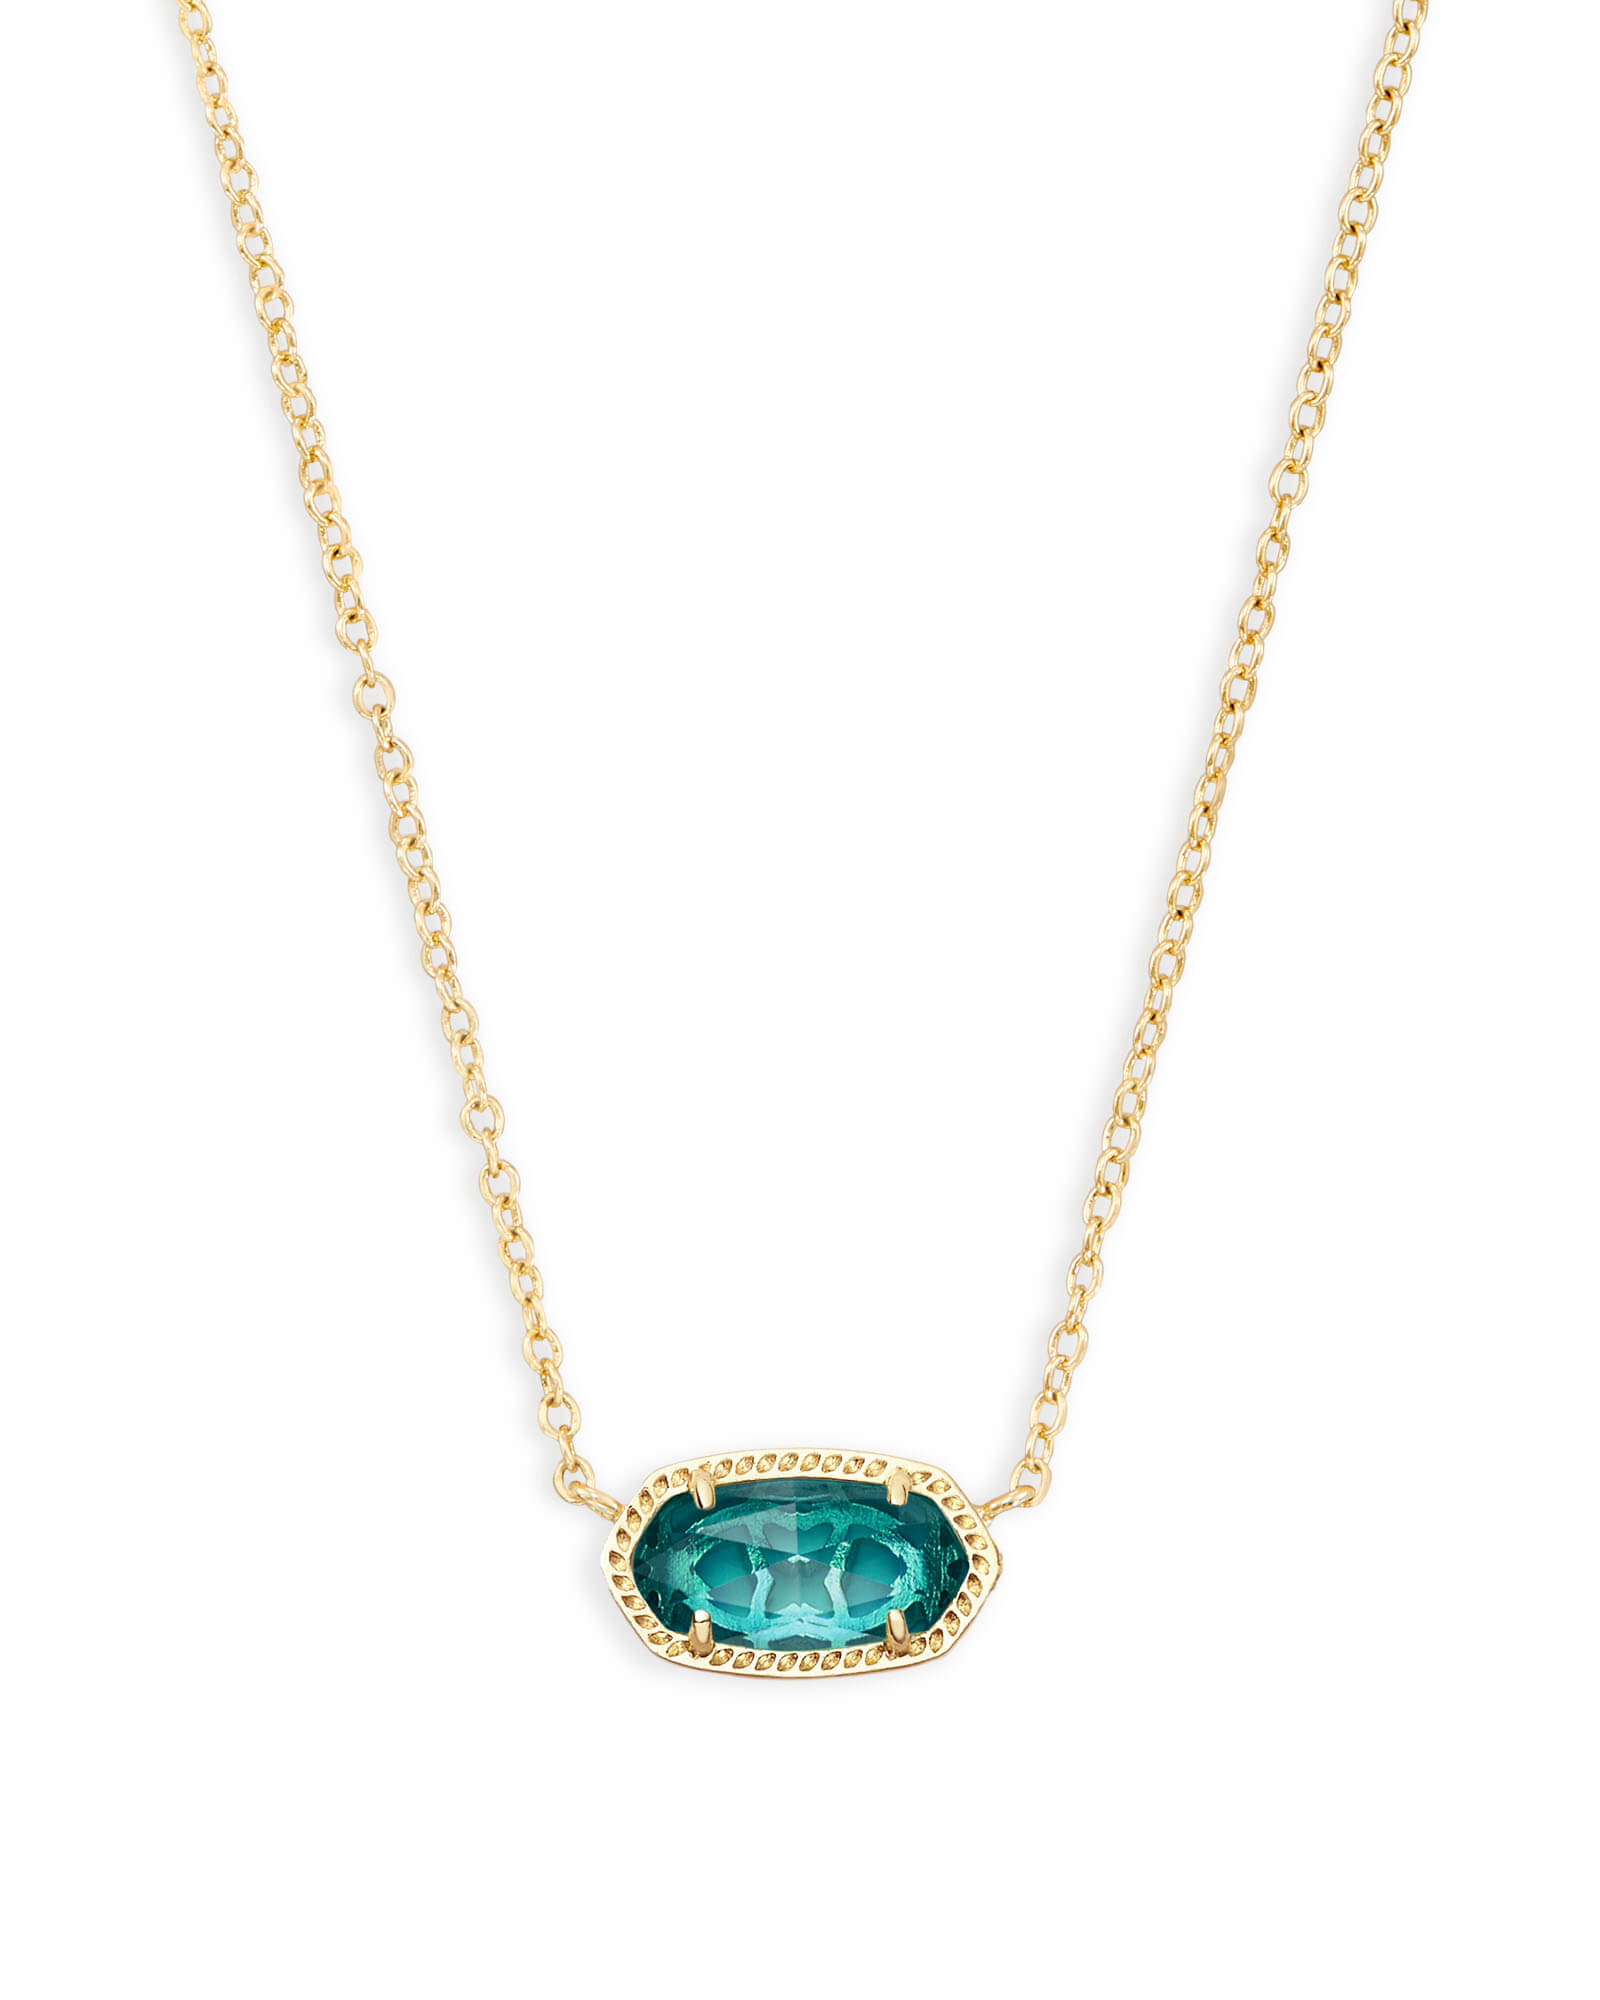 Elisa Gold Pendant Necklace In London Blue | Kendra Scott With Best And Newest Royal Green Crystal May Droplet Pendant Necklaces (View 9 of 25)